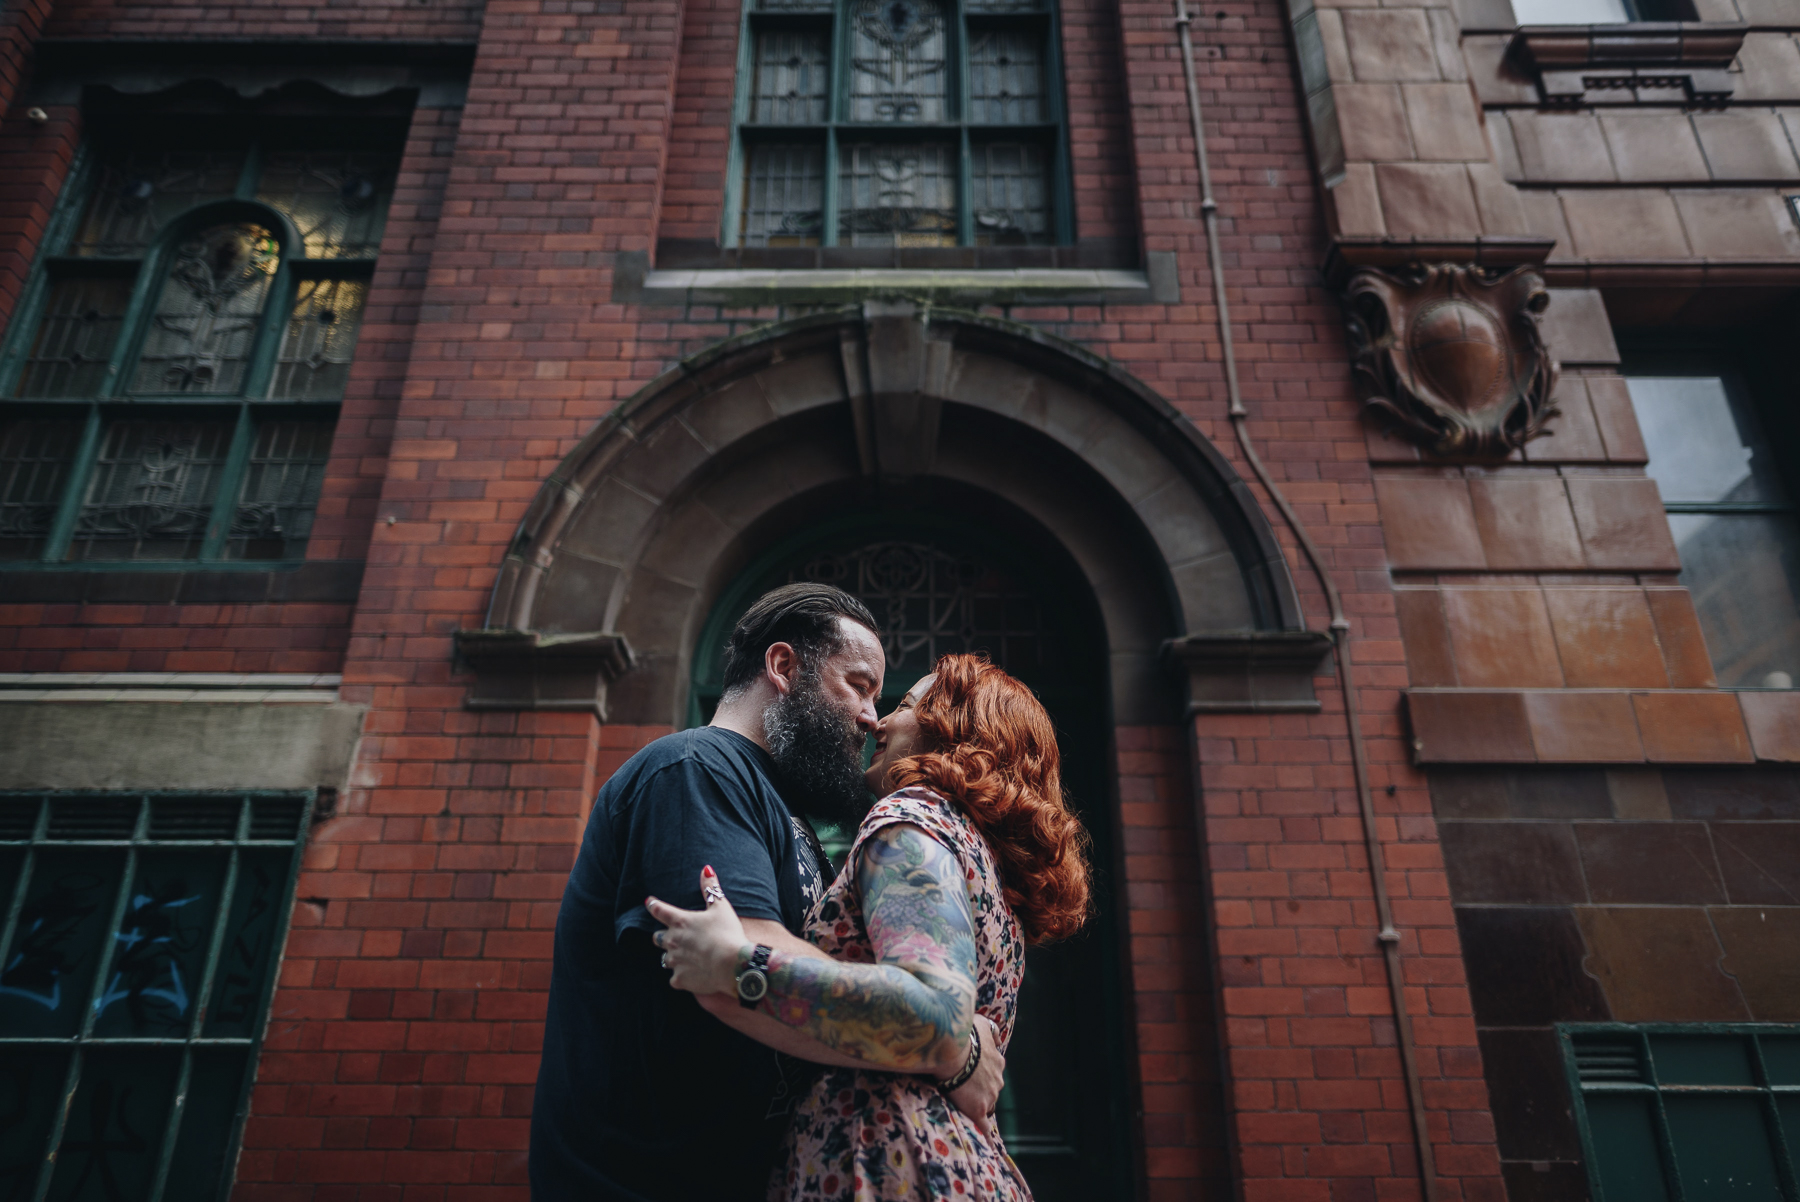 Manchester_Engagement_Photography_Northers_Quarter_The_Pin-Up_Bride-49.jpg